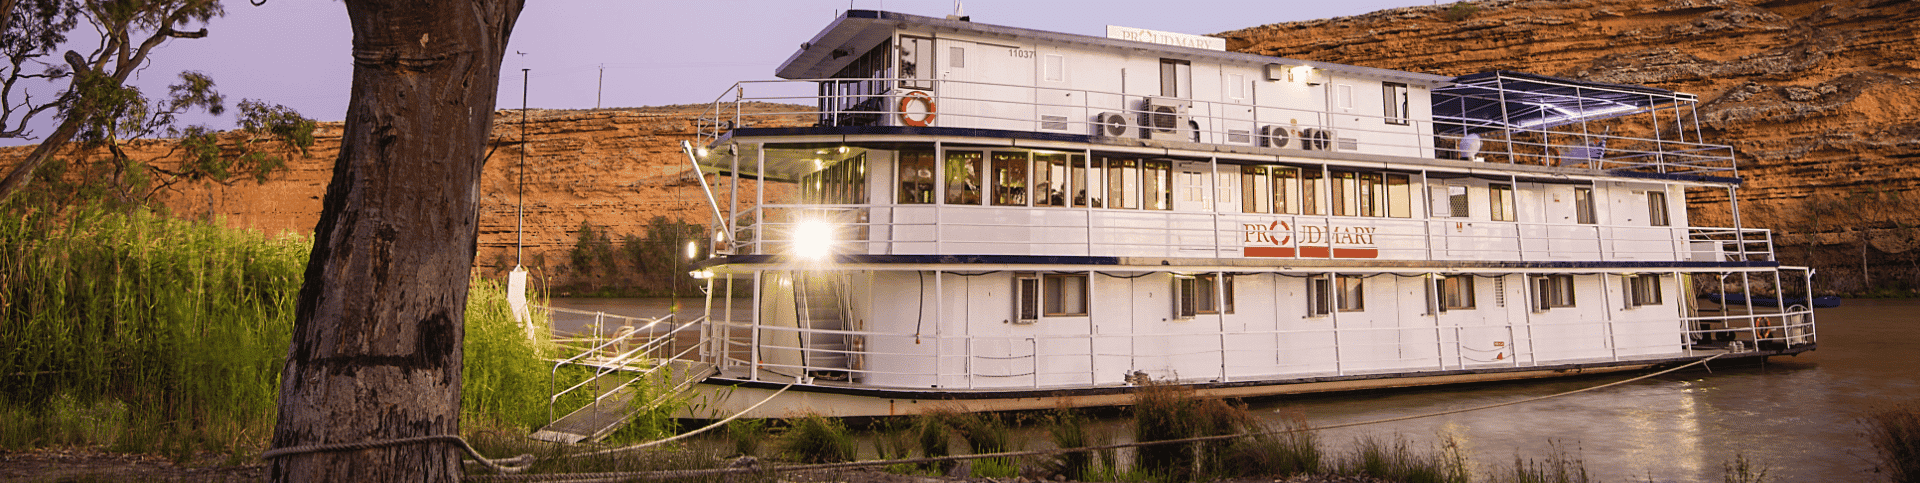 Proud Mary docked on the riverbank